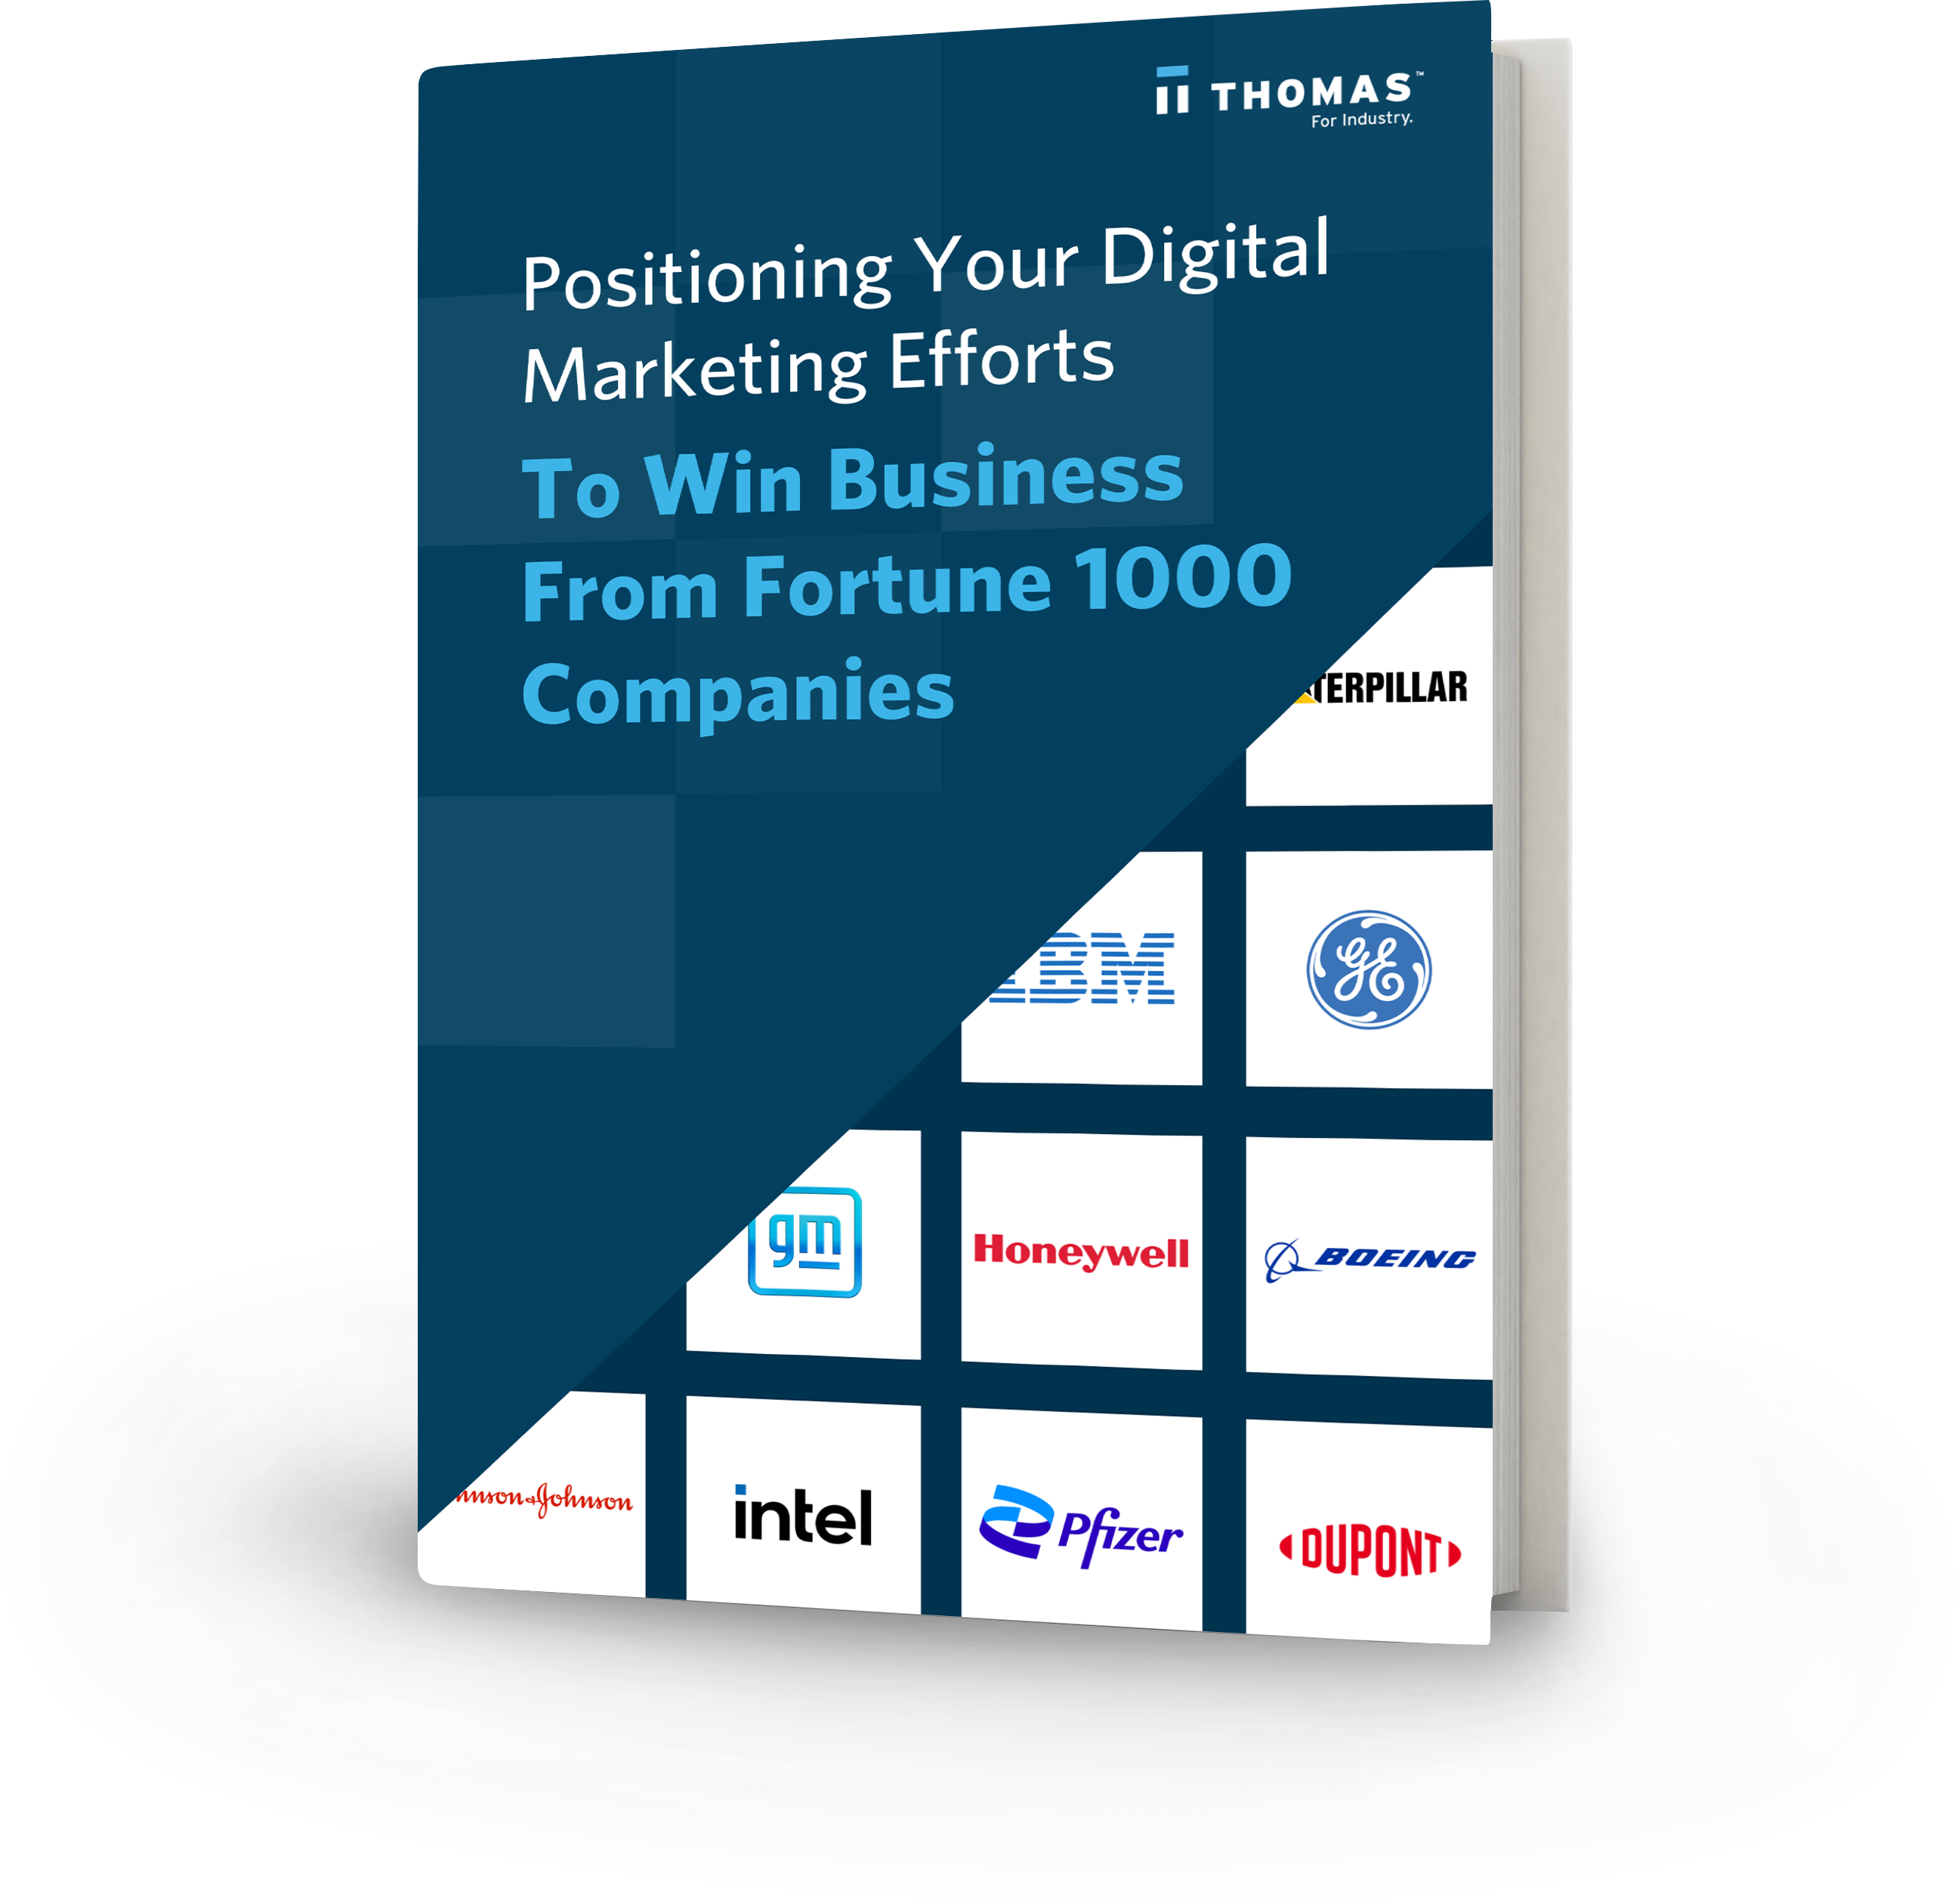 Positioning Your Digital Marketing Efforts To Win Business From Fortune 1000 Companies